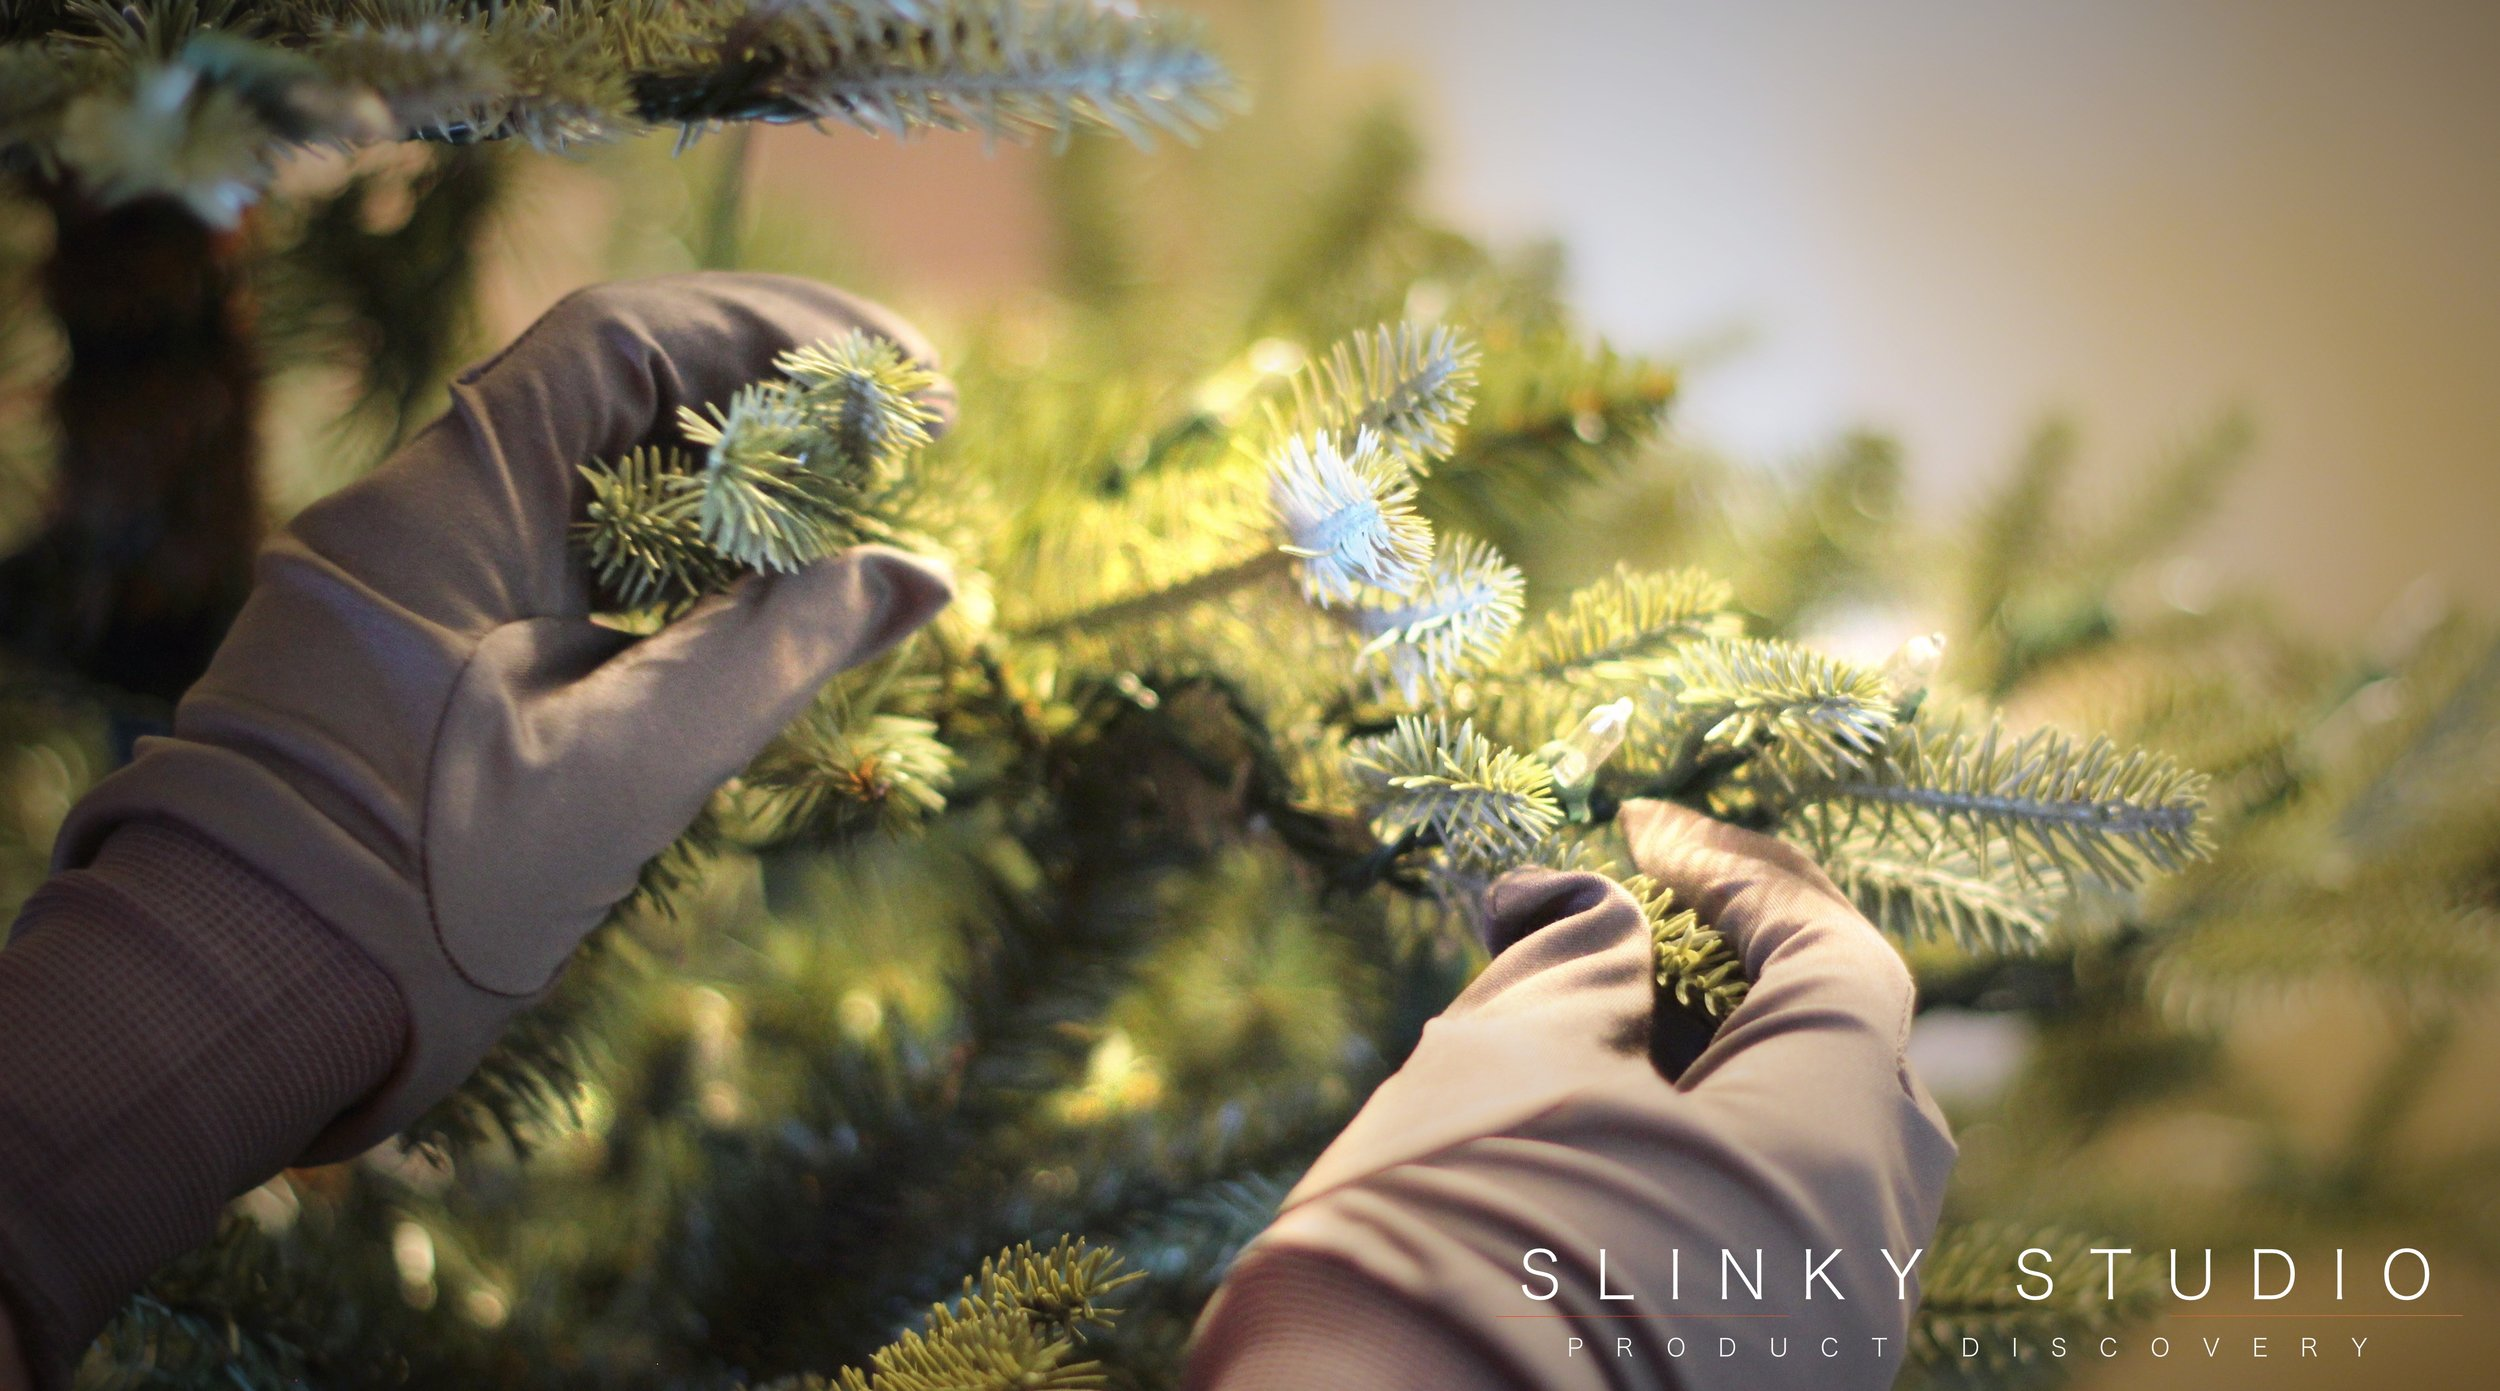 Balsam Hill Fraser Fir Christmas Tree Shaping Branches with Gloves on.jpg